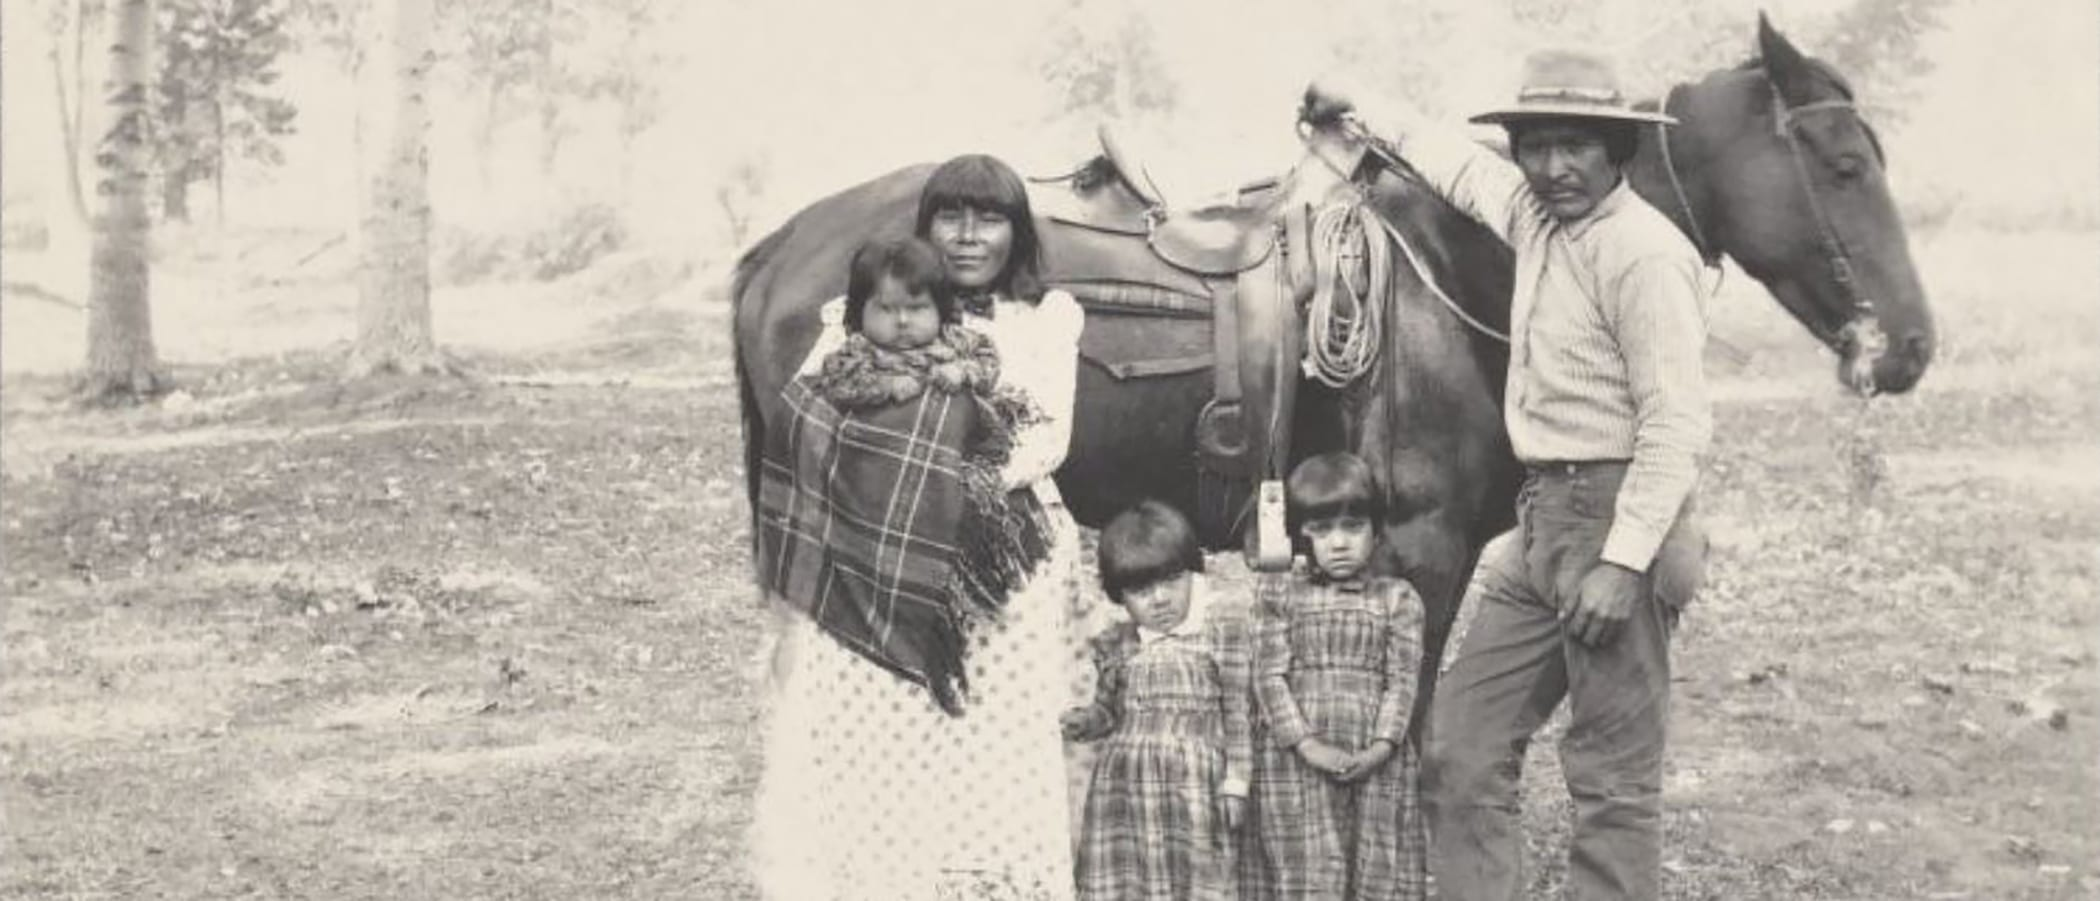 A Kutzadika'a family with a Mother, baby in arms, two young firls, and a Father stand in front of a saddled horse.